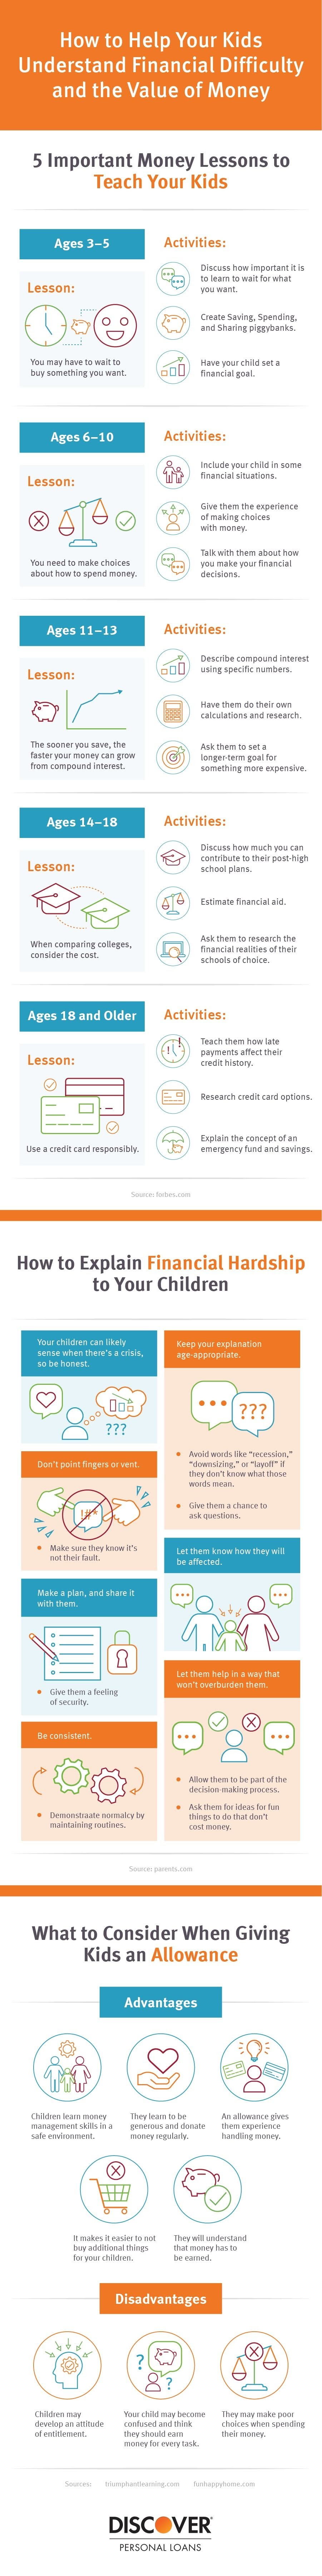 Help Your Kids Understand the Value of Money #infographic